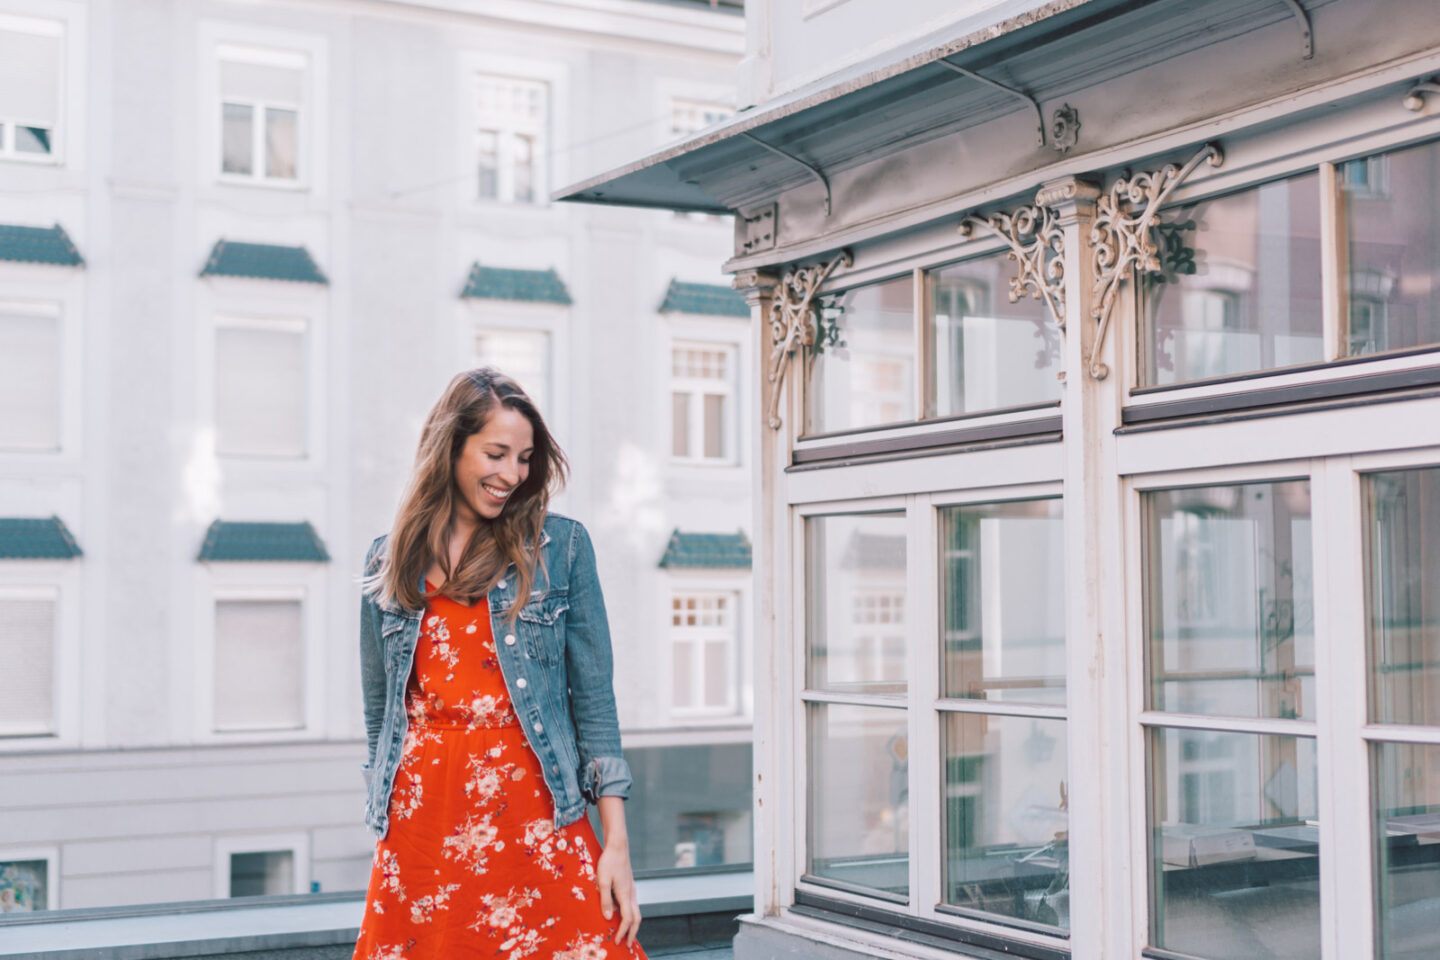 Outfit: Sommer Feeling im April